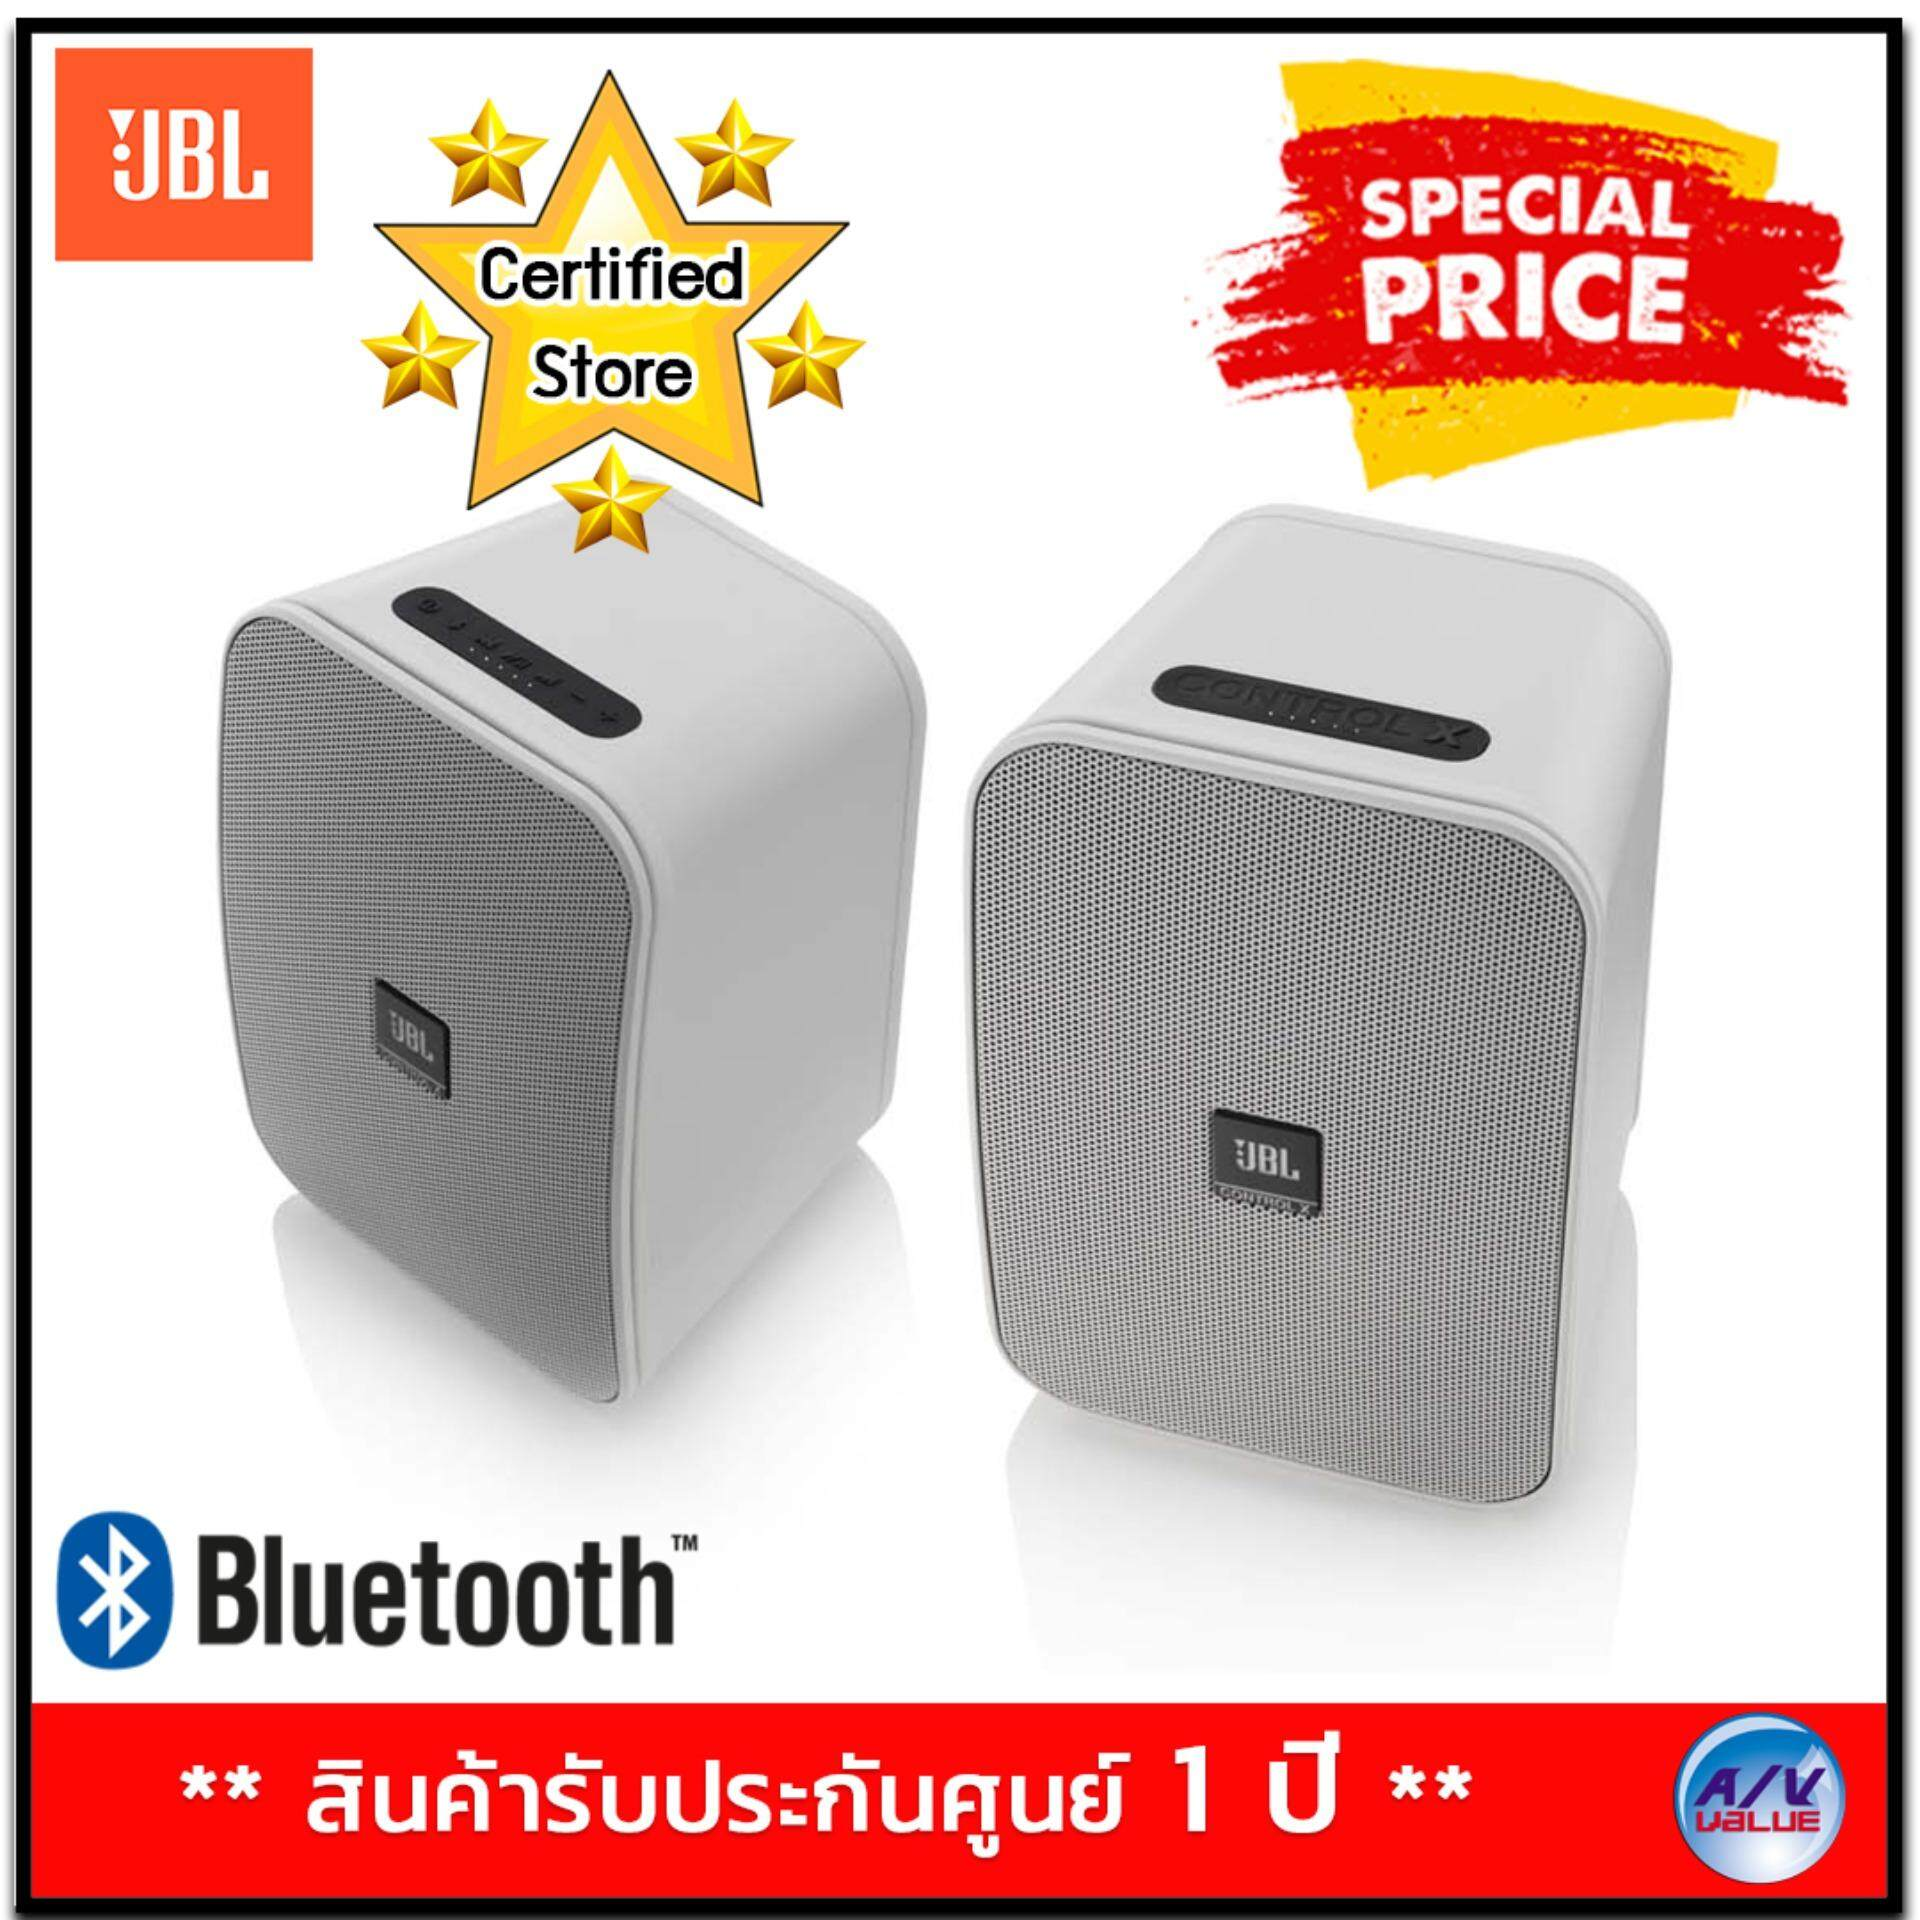 ระยอง JBL Control XT (White) Wireless stereo Bluetooth® speakers **Voucher ลดเพิ่มพิเศษ